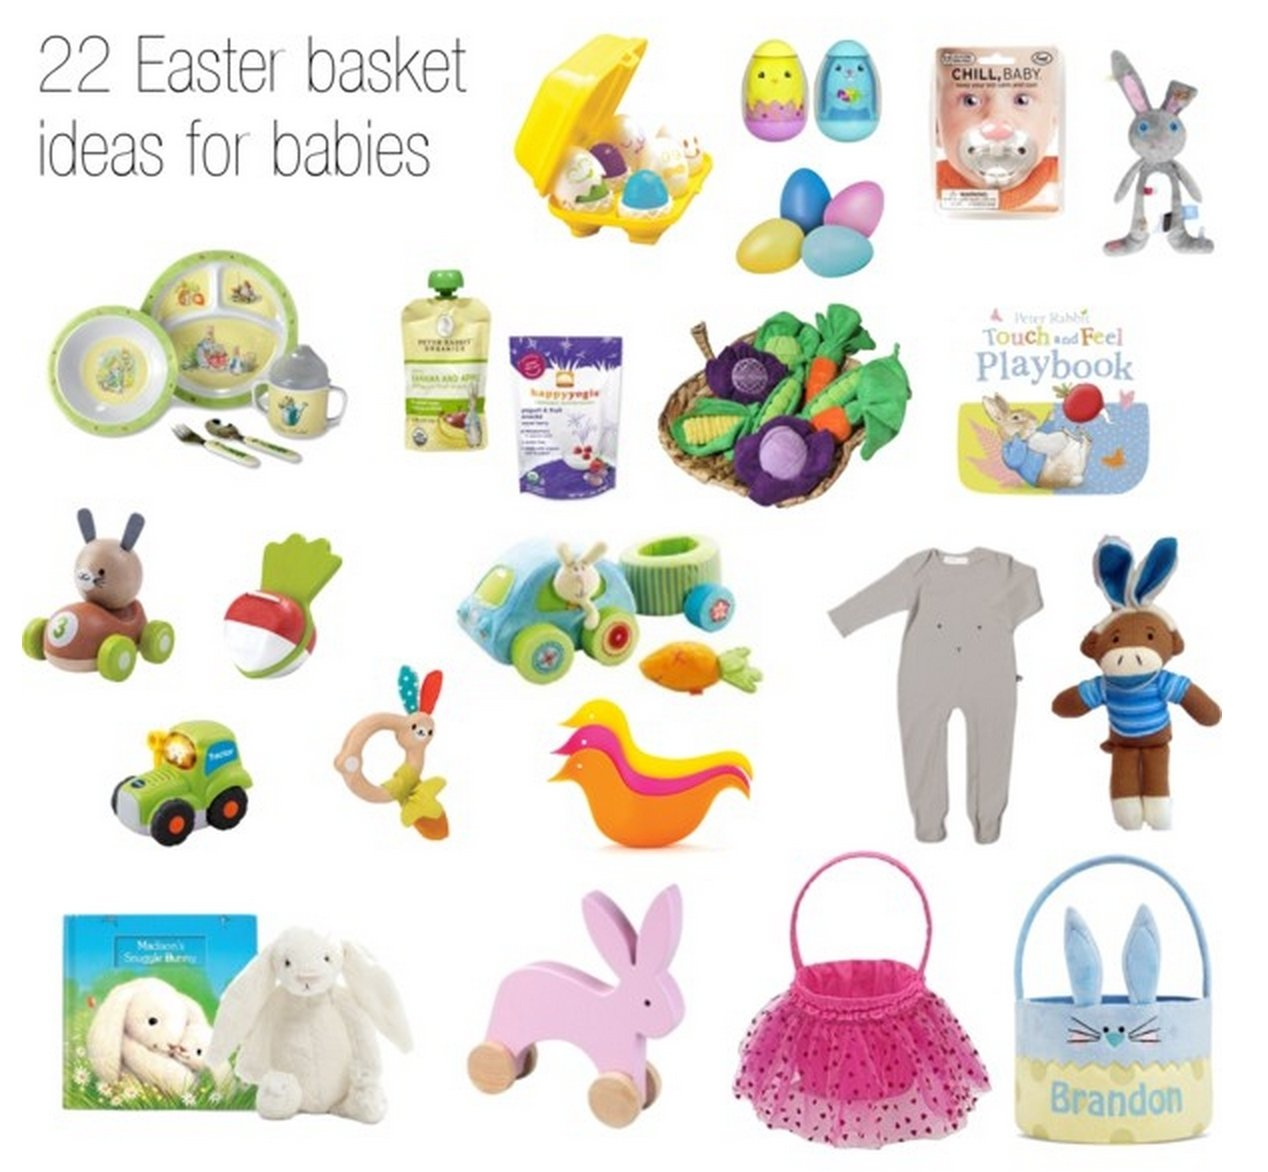 10 Great Easter Basket Ideas For Babies 22 adorable easter basket ideas for babies 2021